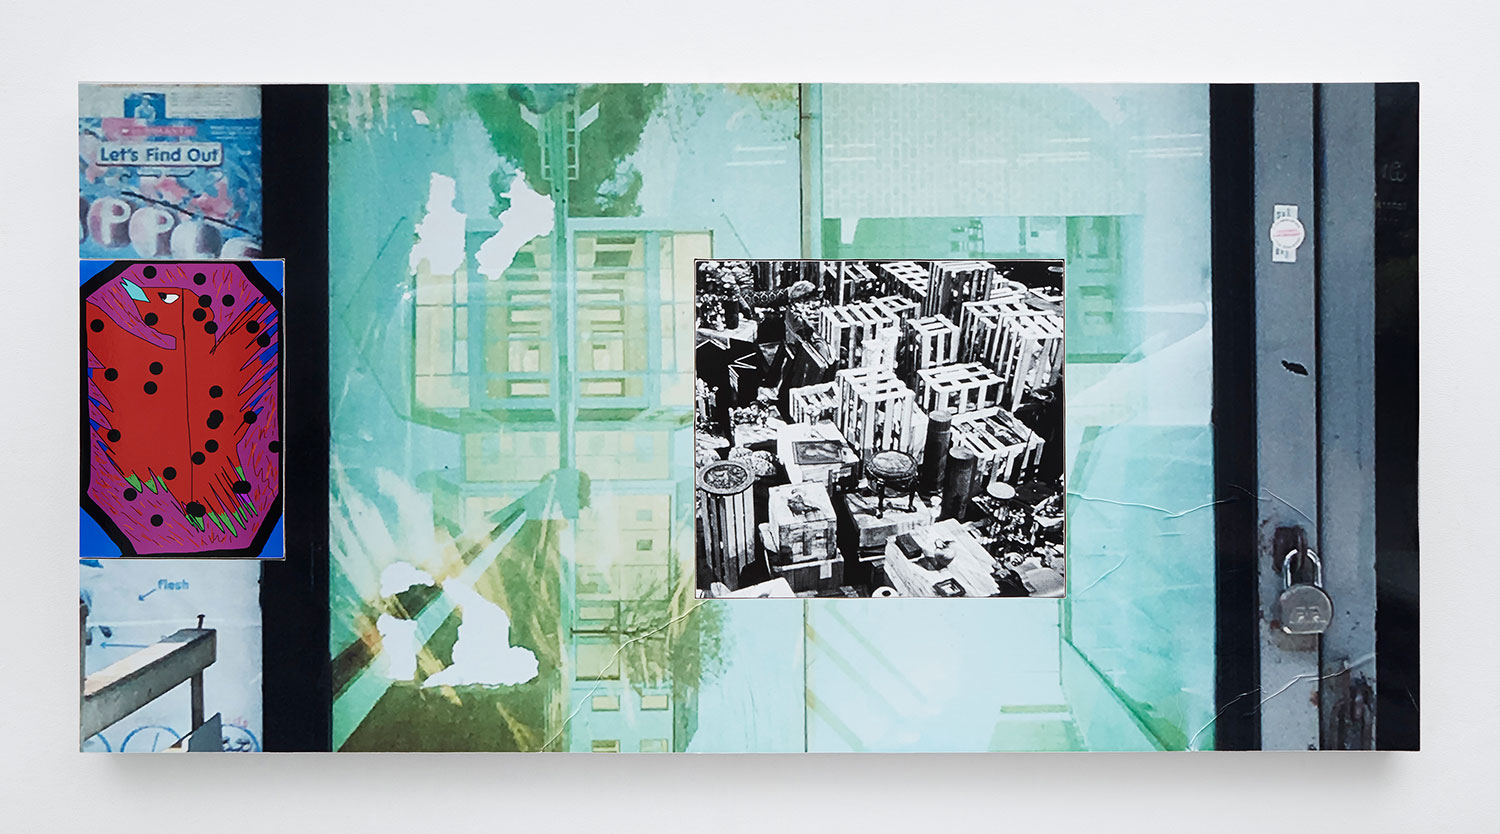 A mixed-media collage incorporating photographs and drawings into the canvas